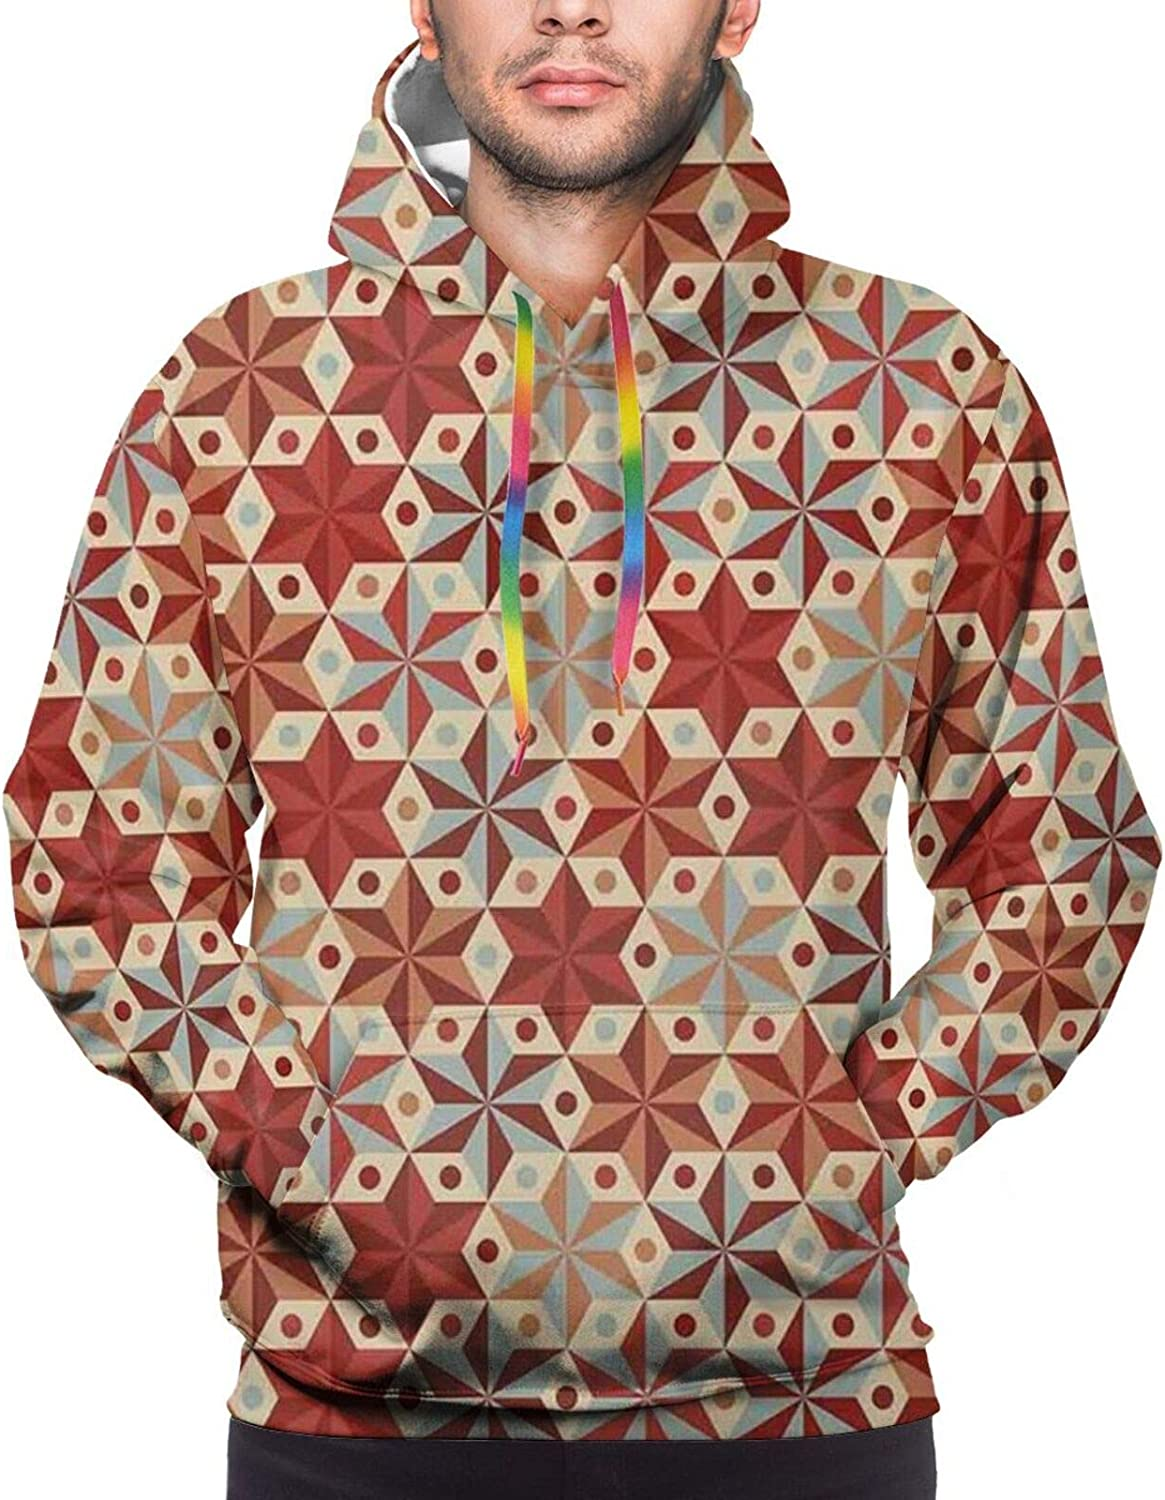 Men's Hoodies Sweatshirts,Abstract Anise Stars Pattern in Warm Retro Colors with Dots Geometric Design,Small